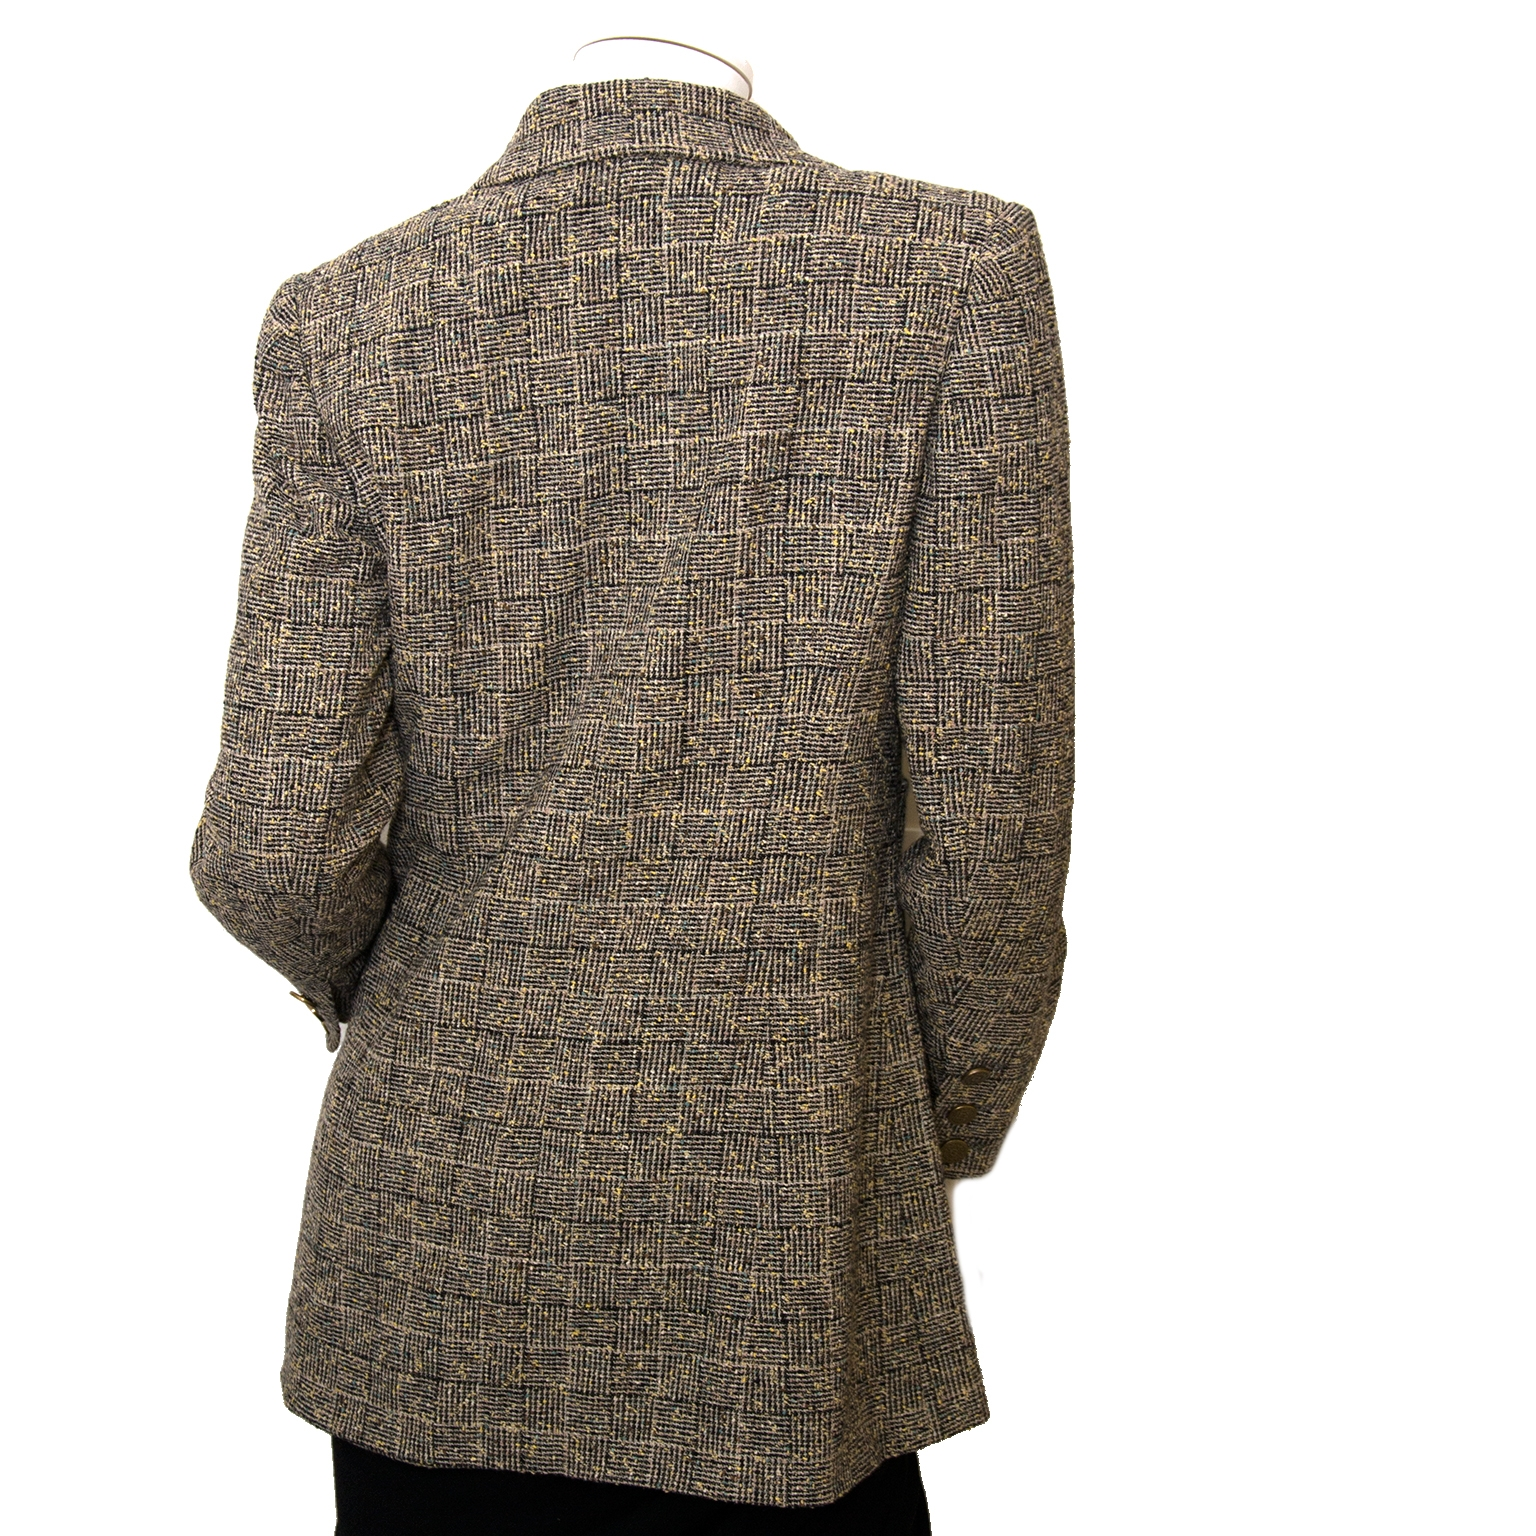 chanel tweed blazer now for sale at labellov vintage fashion webshop belgium